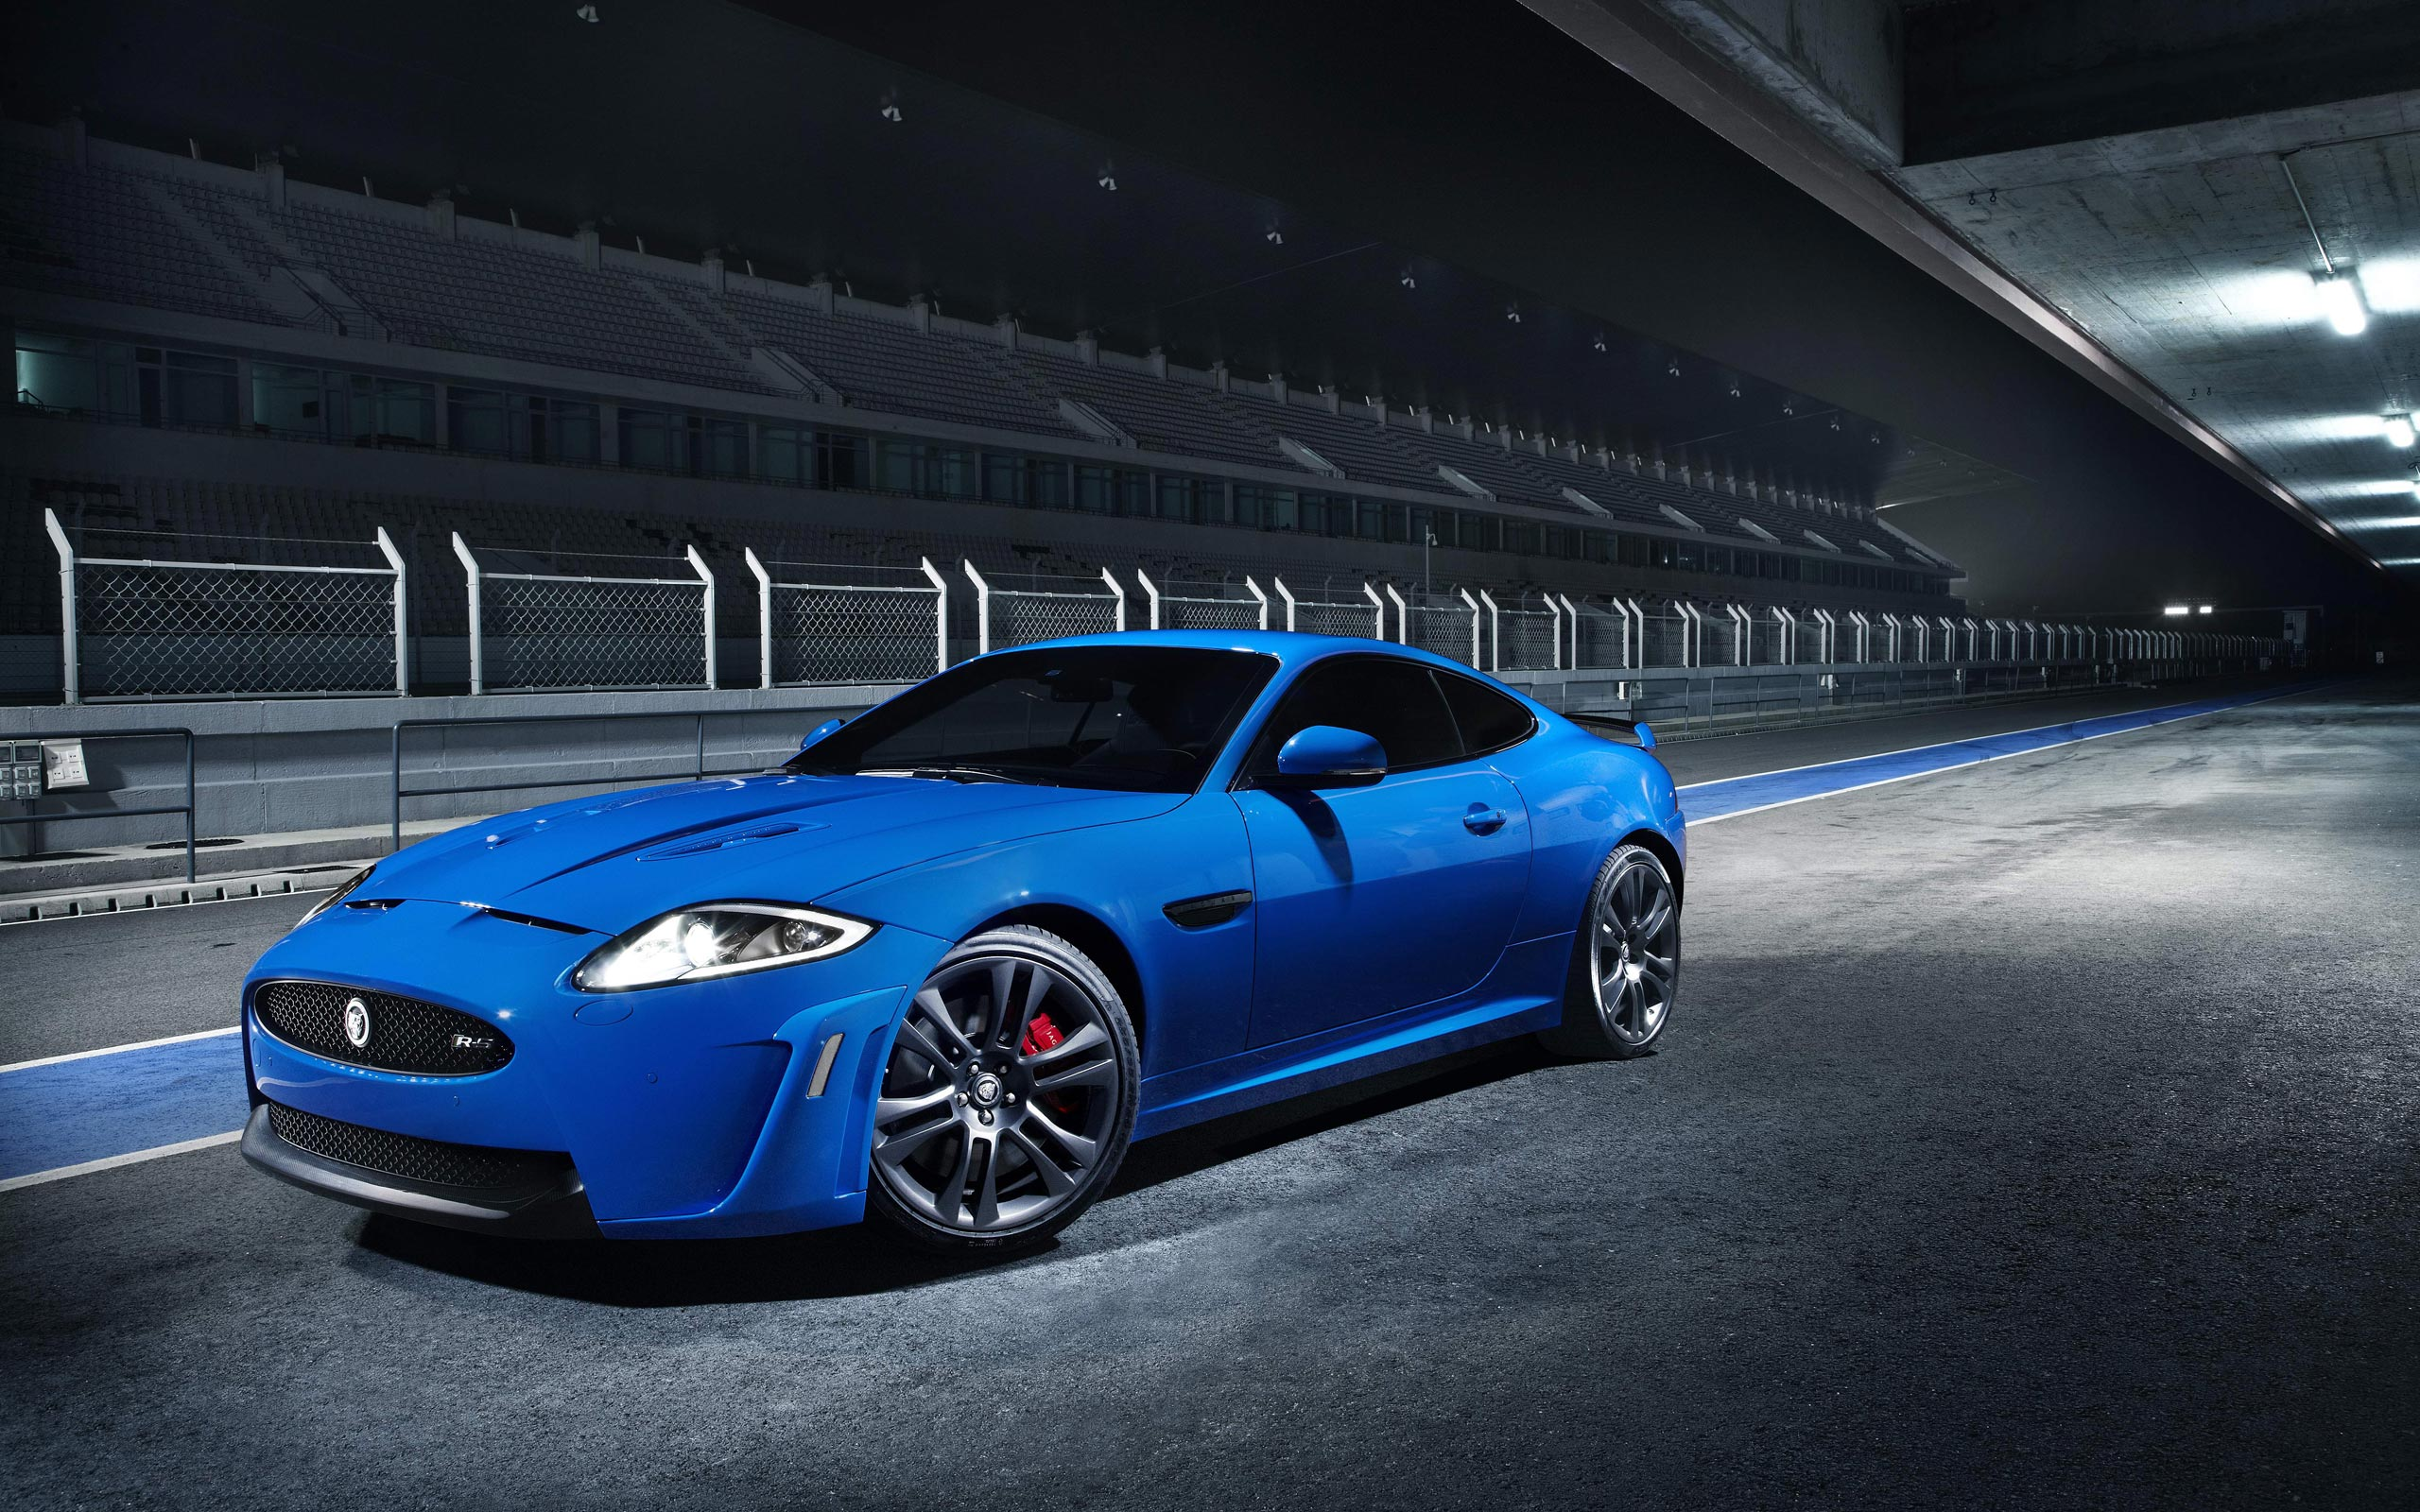 Cool Blue Car Wallpaper 32611 2560x1600 px HDWallSourcecom 2560x1600